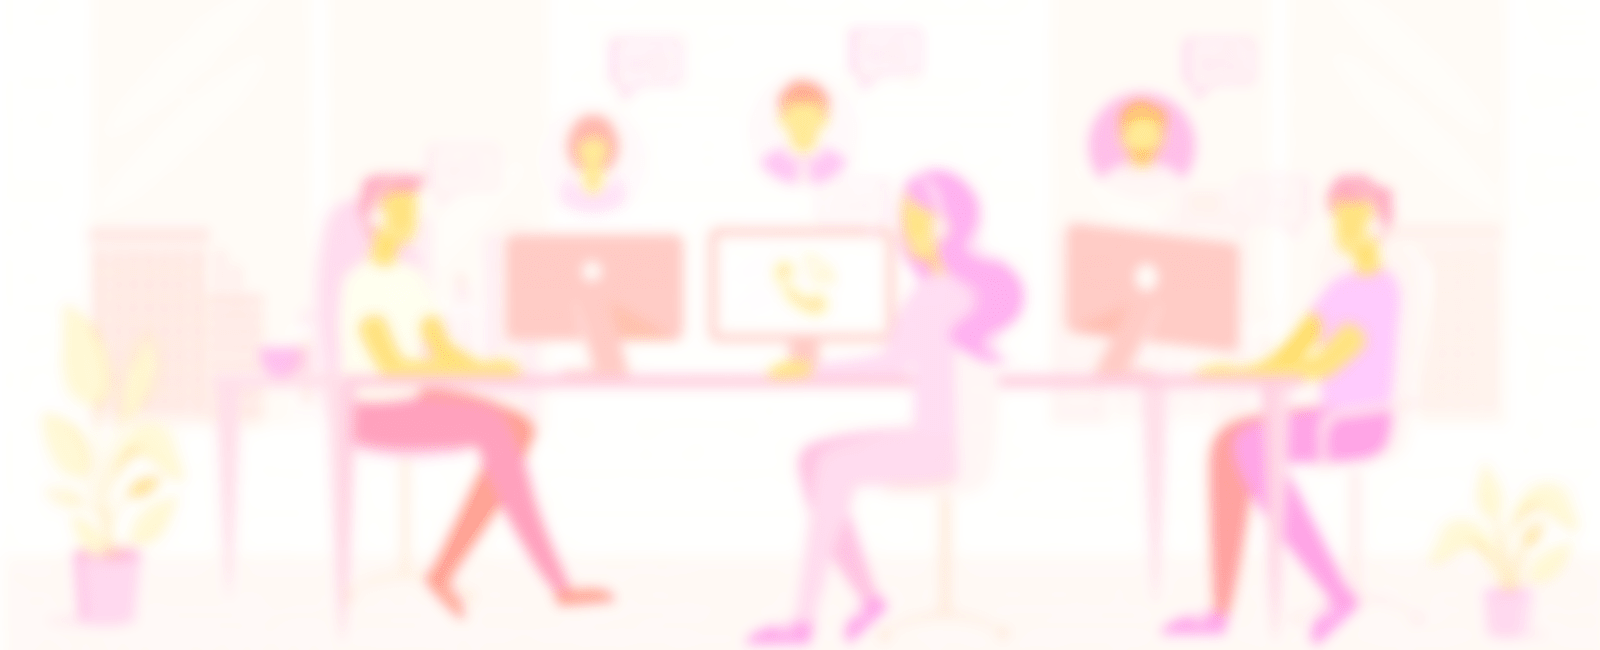 Blurred image of animated employees working together for gaining lead generation for their business work